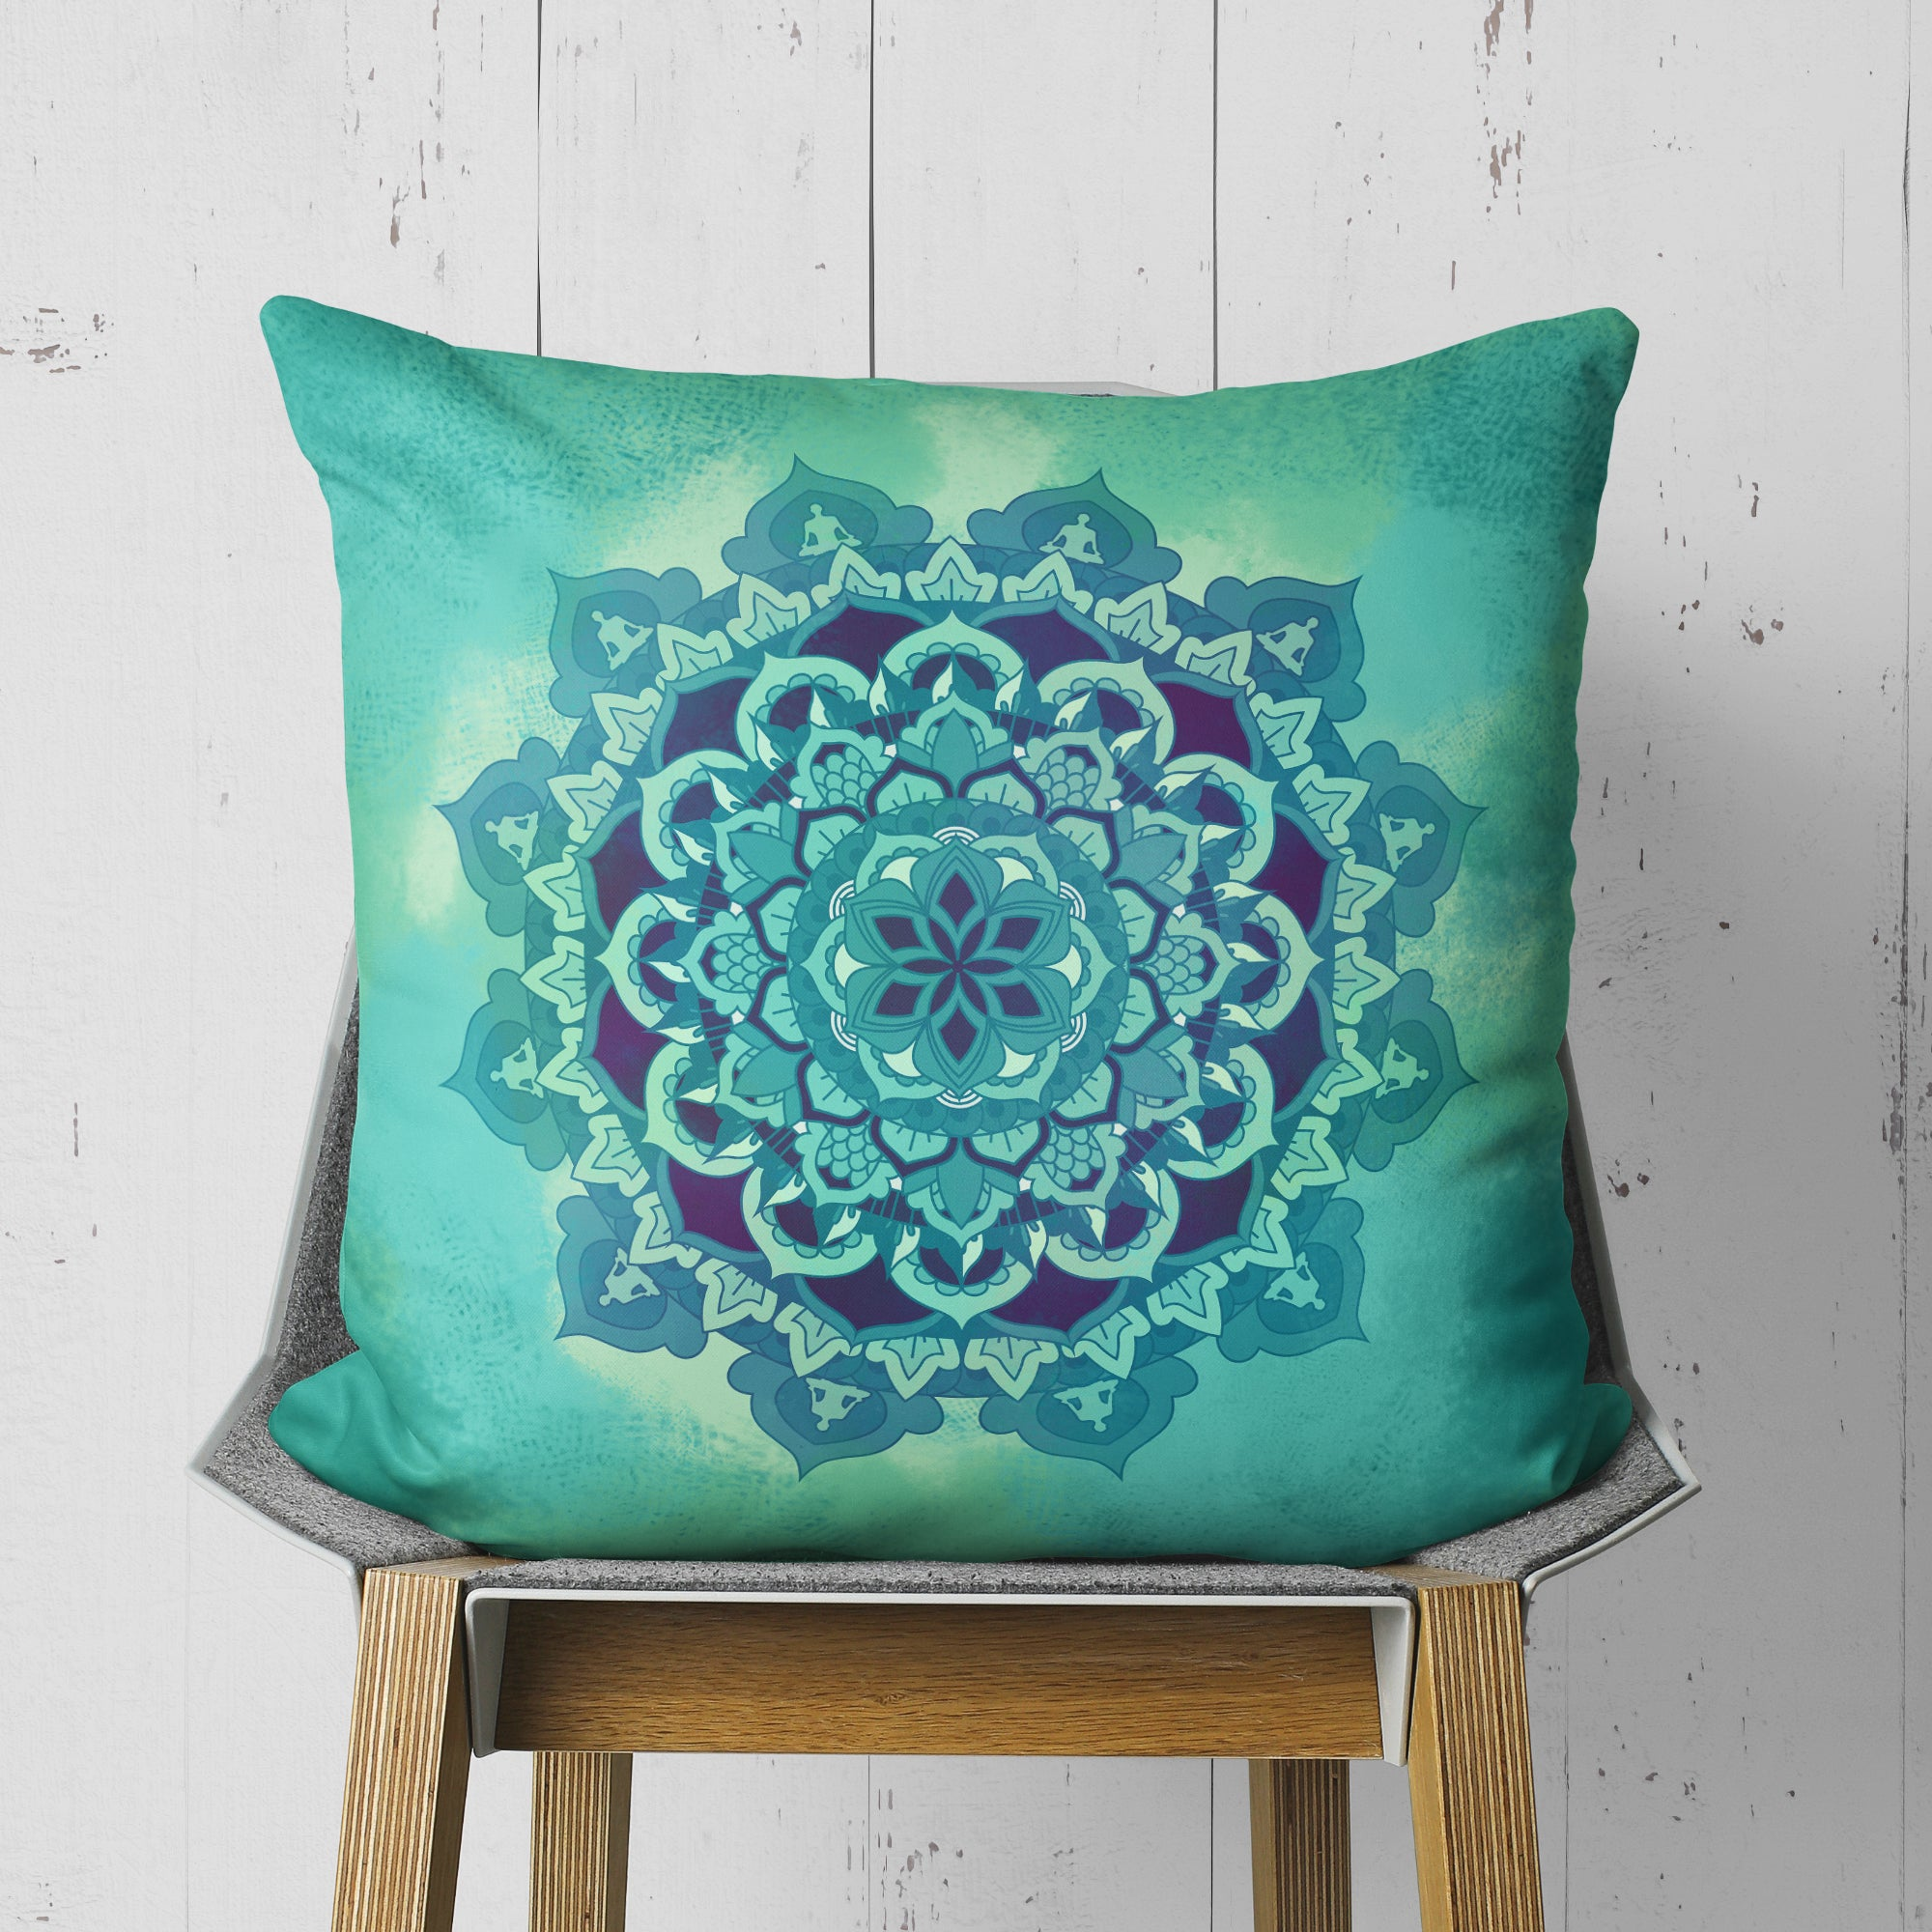 Green mandala throw pillow on chair